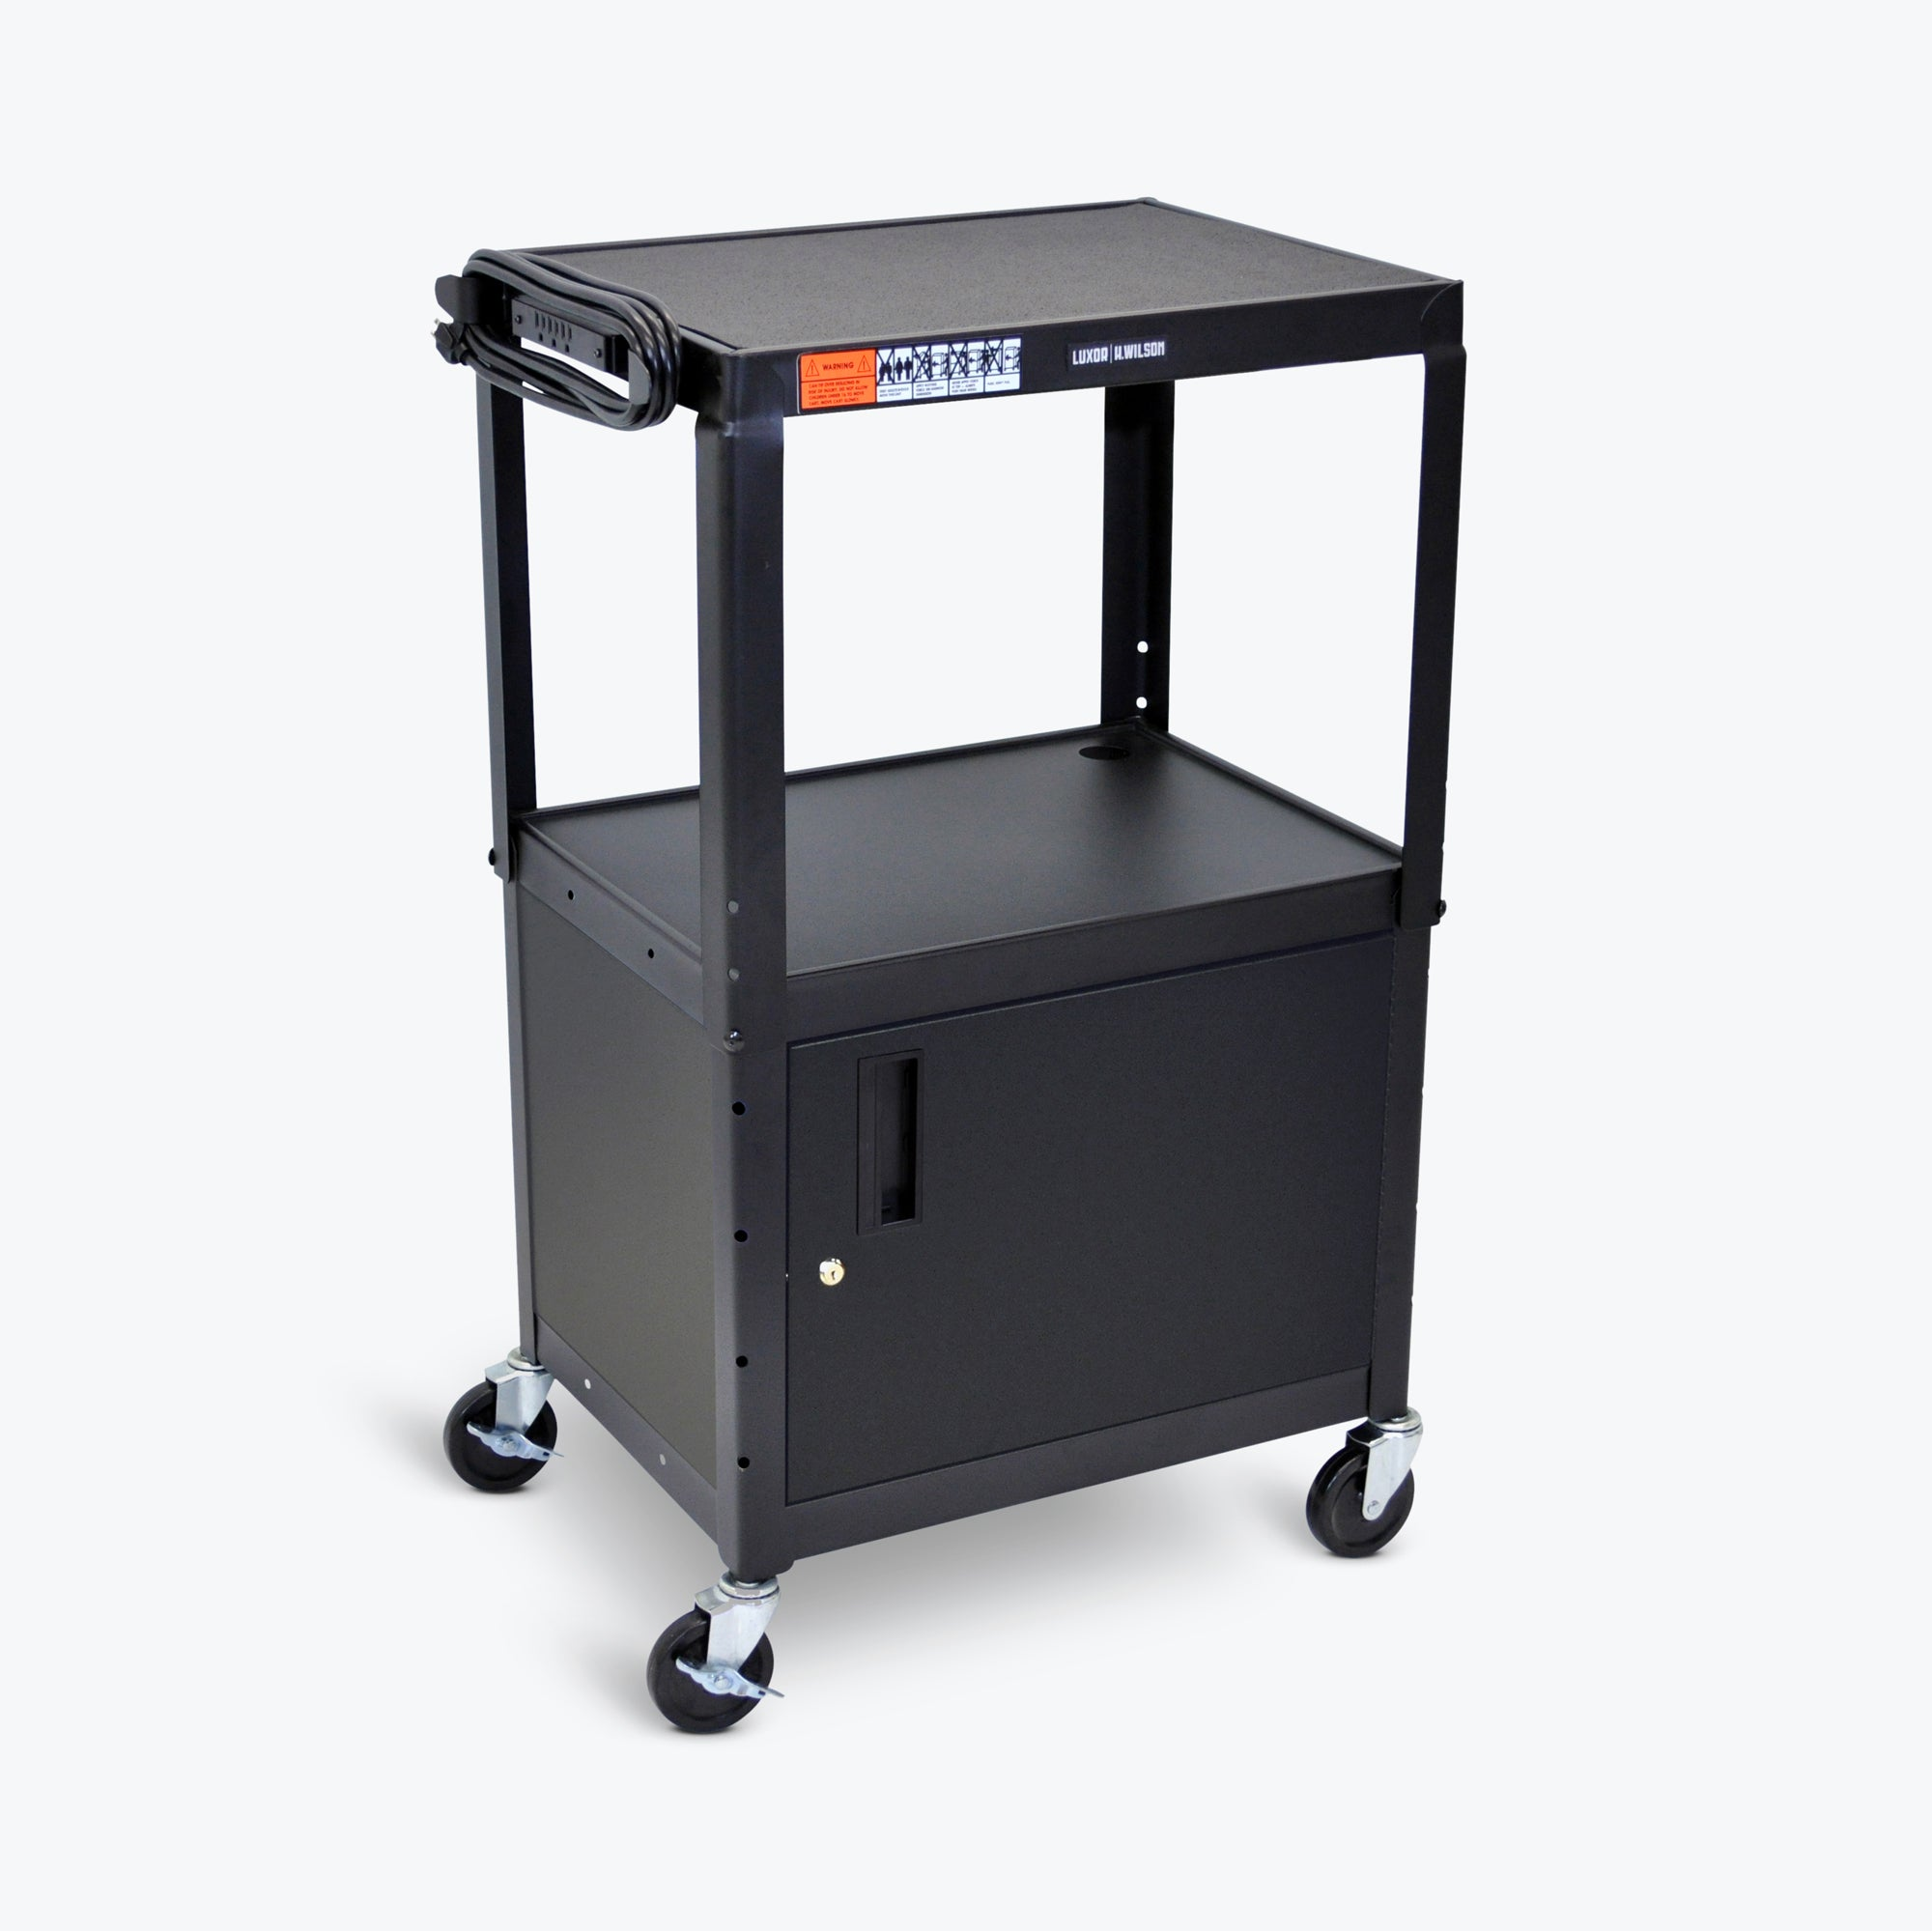 "Luxor Adjustable Height Metal Cart w/ Cabinet 24""W x 18""D x 24"" to 42""H (Black) - AVJ42C"